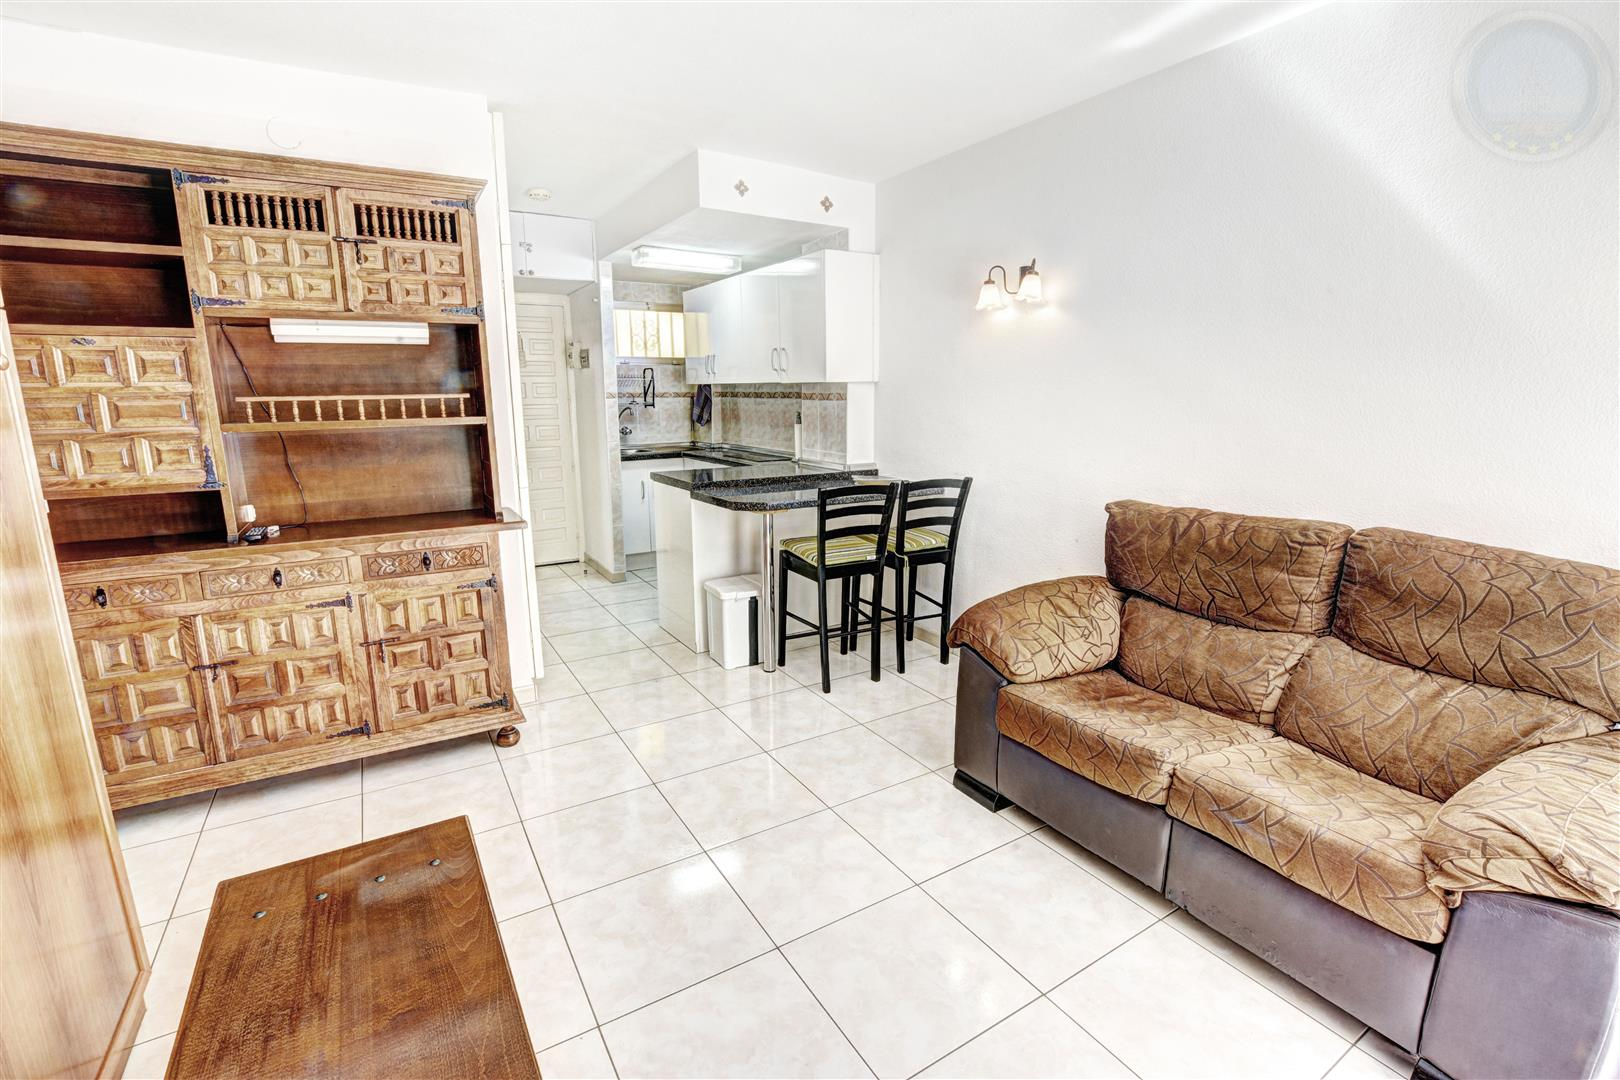 Studio apartment for sale in Benalmadena Costa Minerva lounge